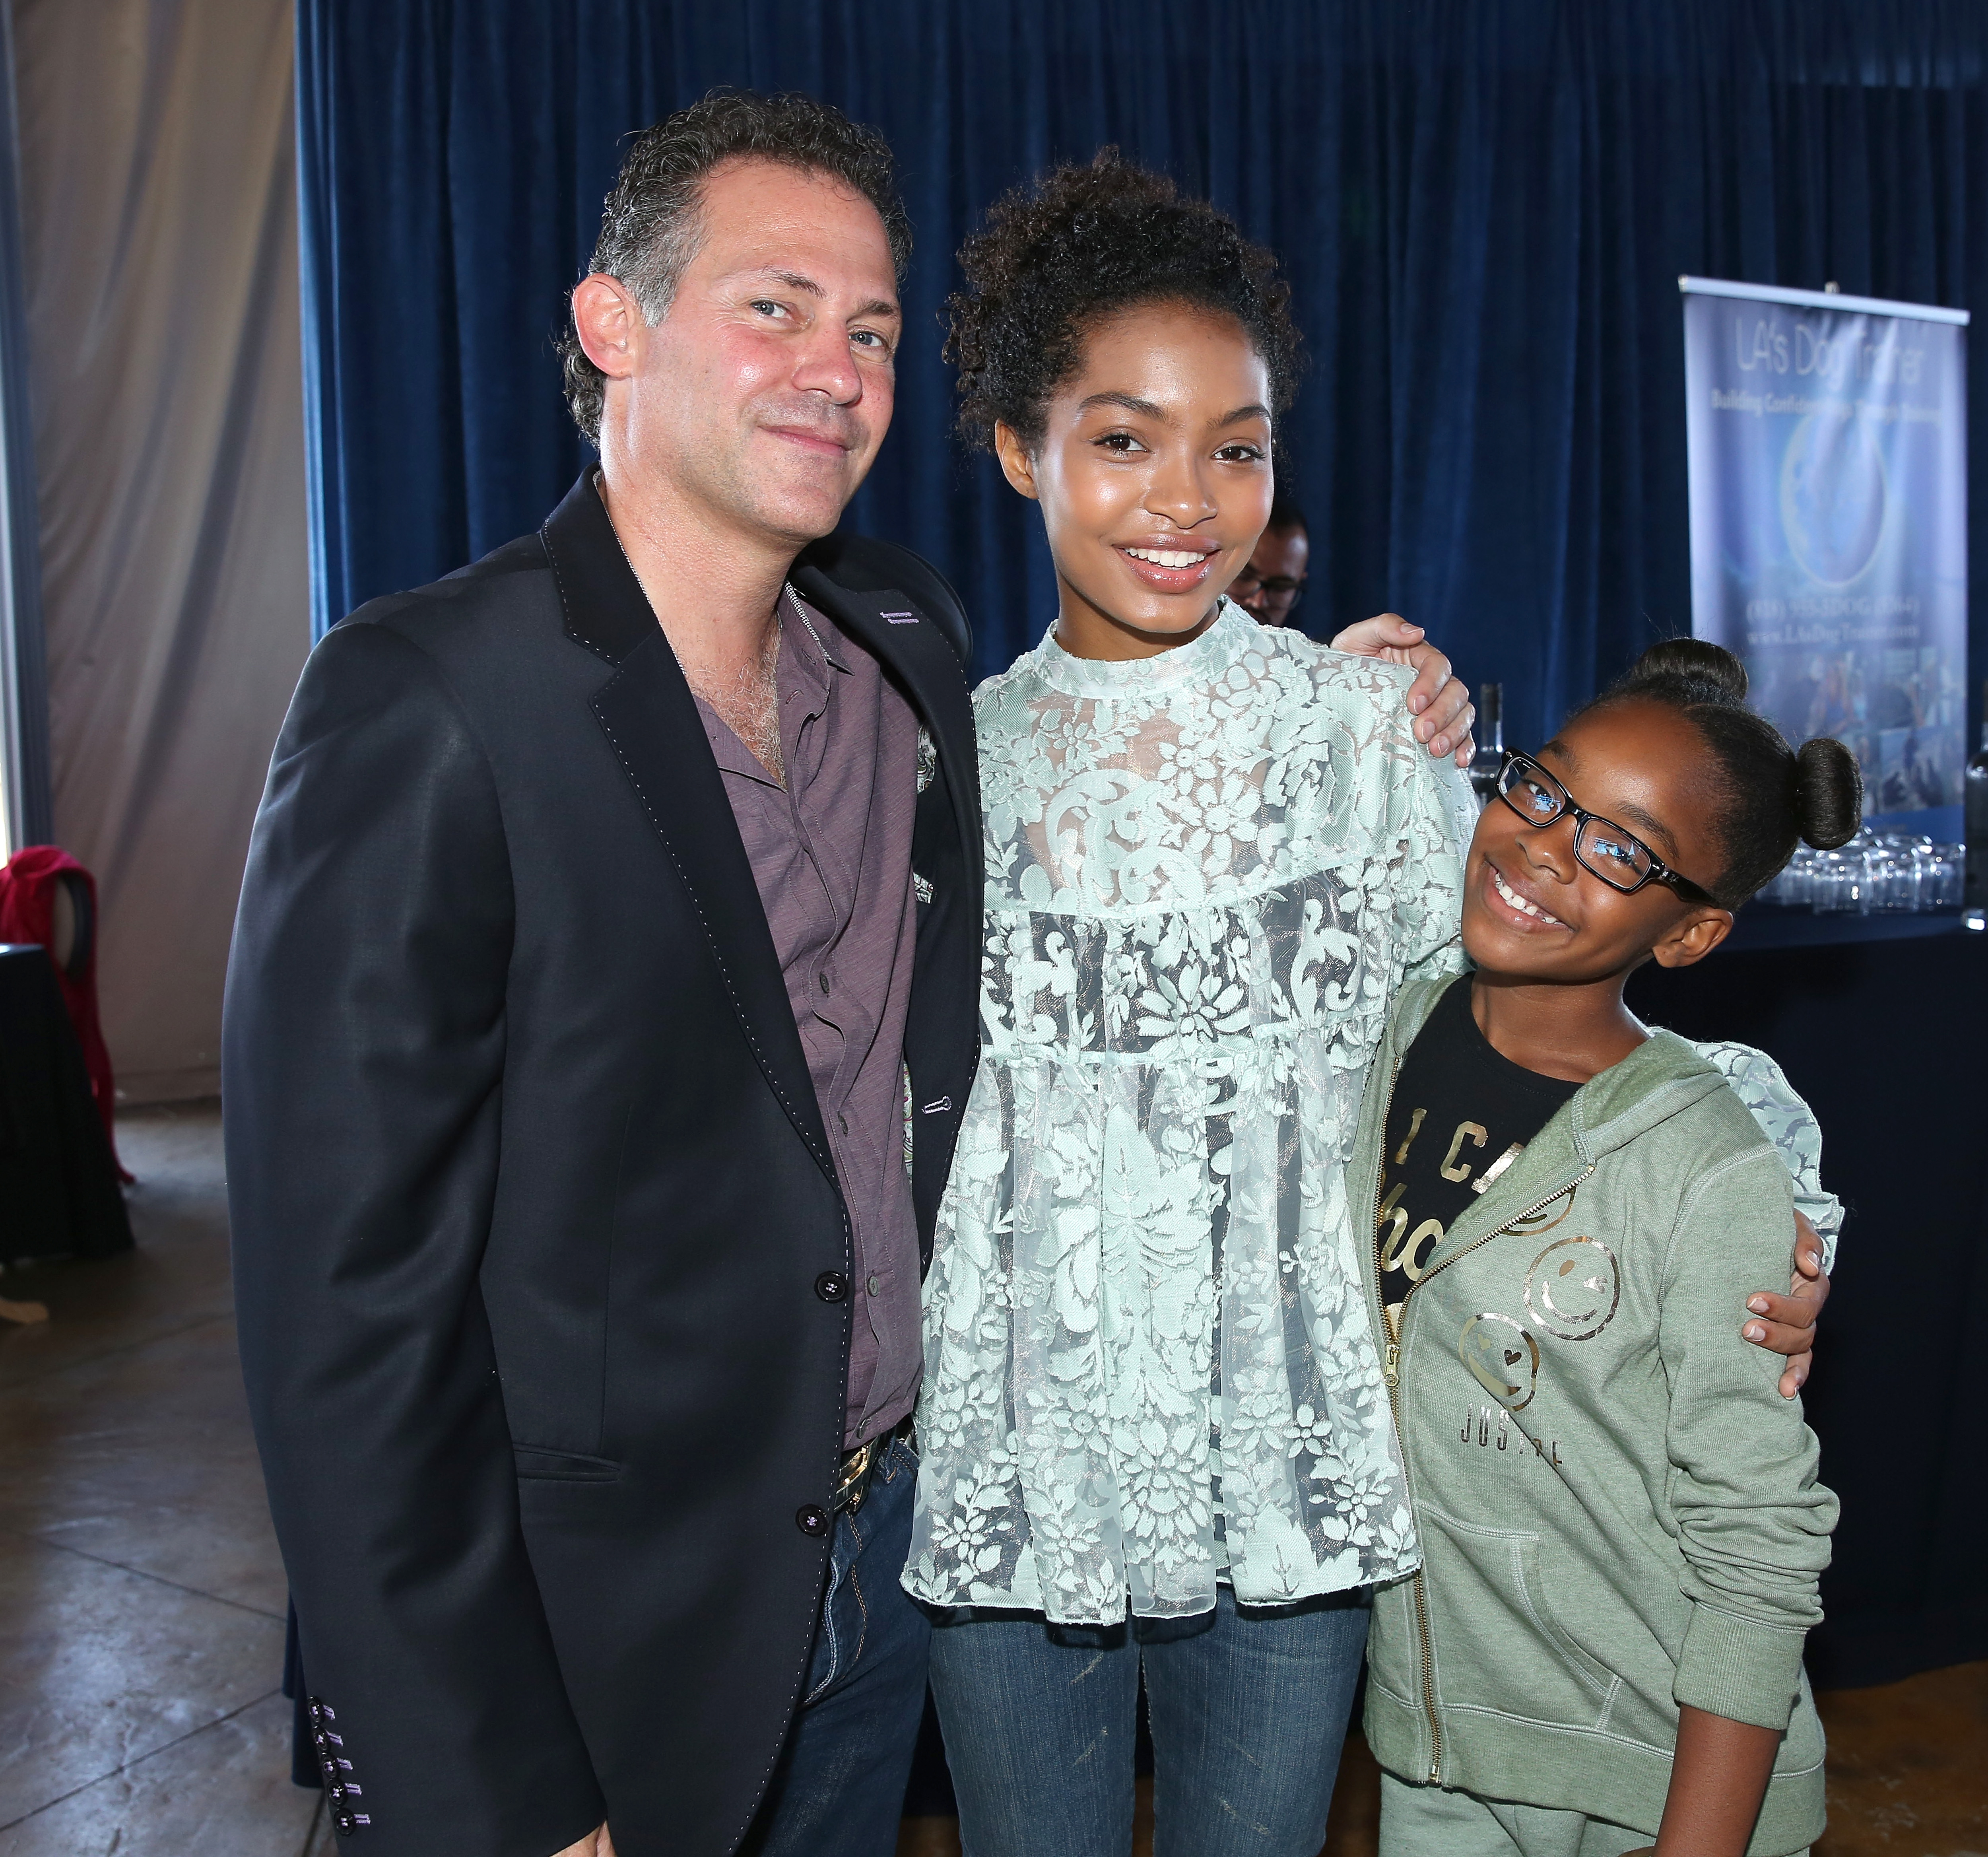 BEVERLY HILLS, CA - SEPTEMBER 16: (L-R) Gavin Keilly, actors Yara Shahidi and Marsai Martin attend PILOT PEN & GBK's Pre-Emmy Luxury Lounge - Day 1 at L'Ermitage Beverly Hills Hotel on September 16, 2016 in Beverly Hills, California. (Photo by Maury Phillips/Getty Images for GBK Productions)